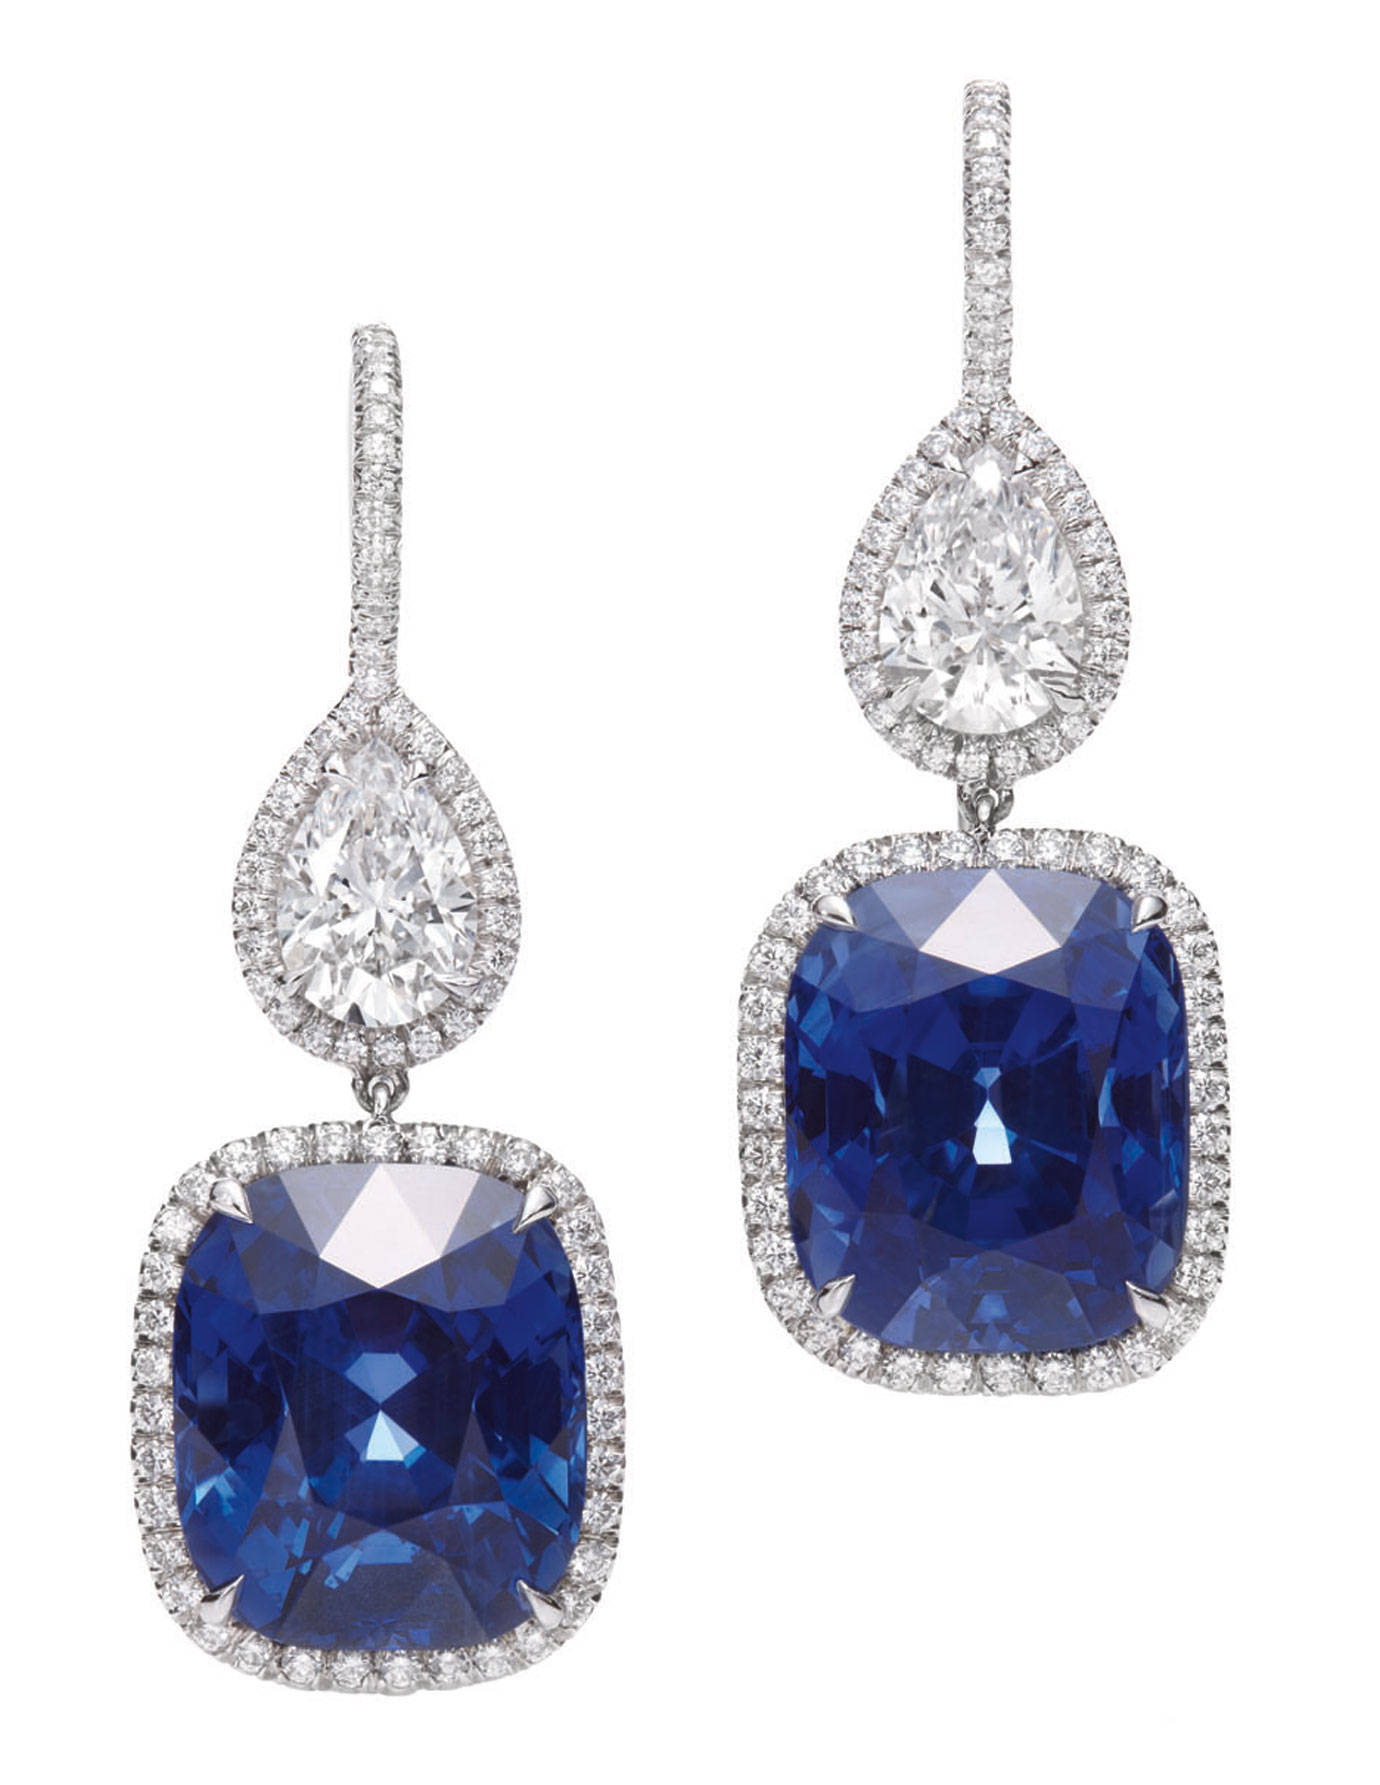 Harry winston harry winston jewelry for Harry winston jewelry pinterest